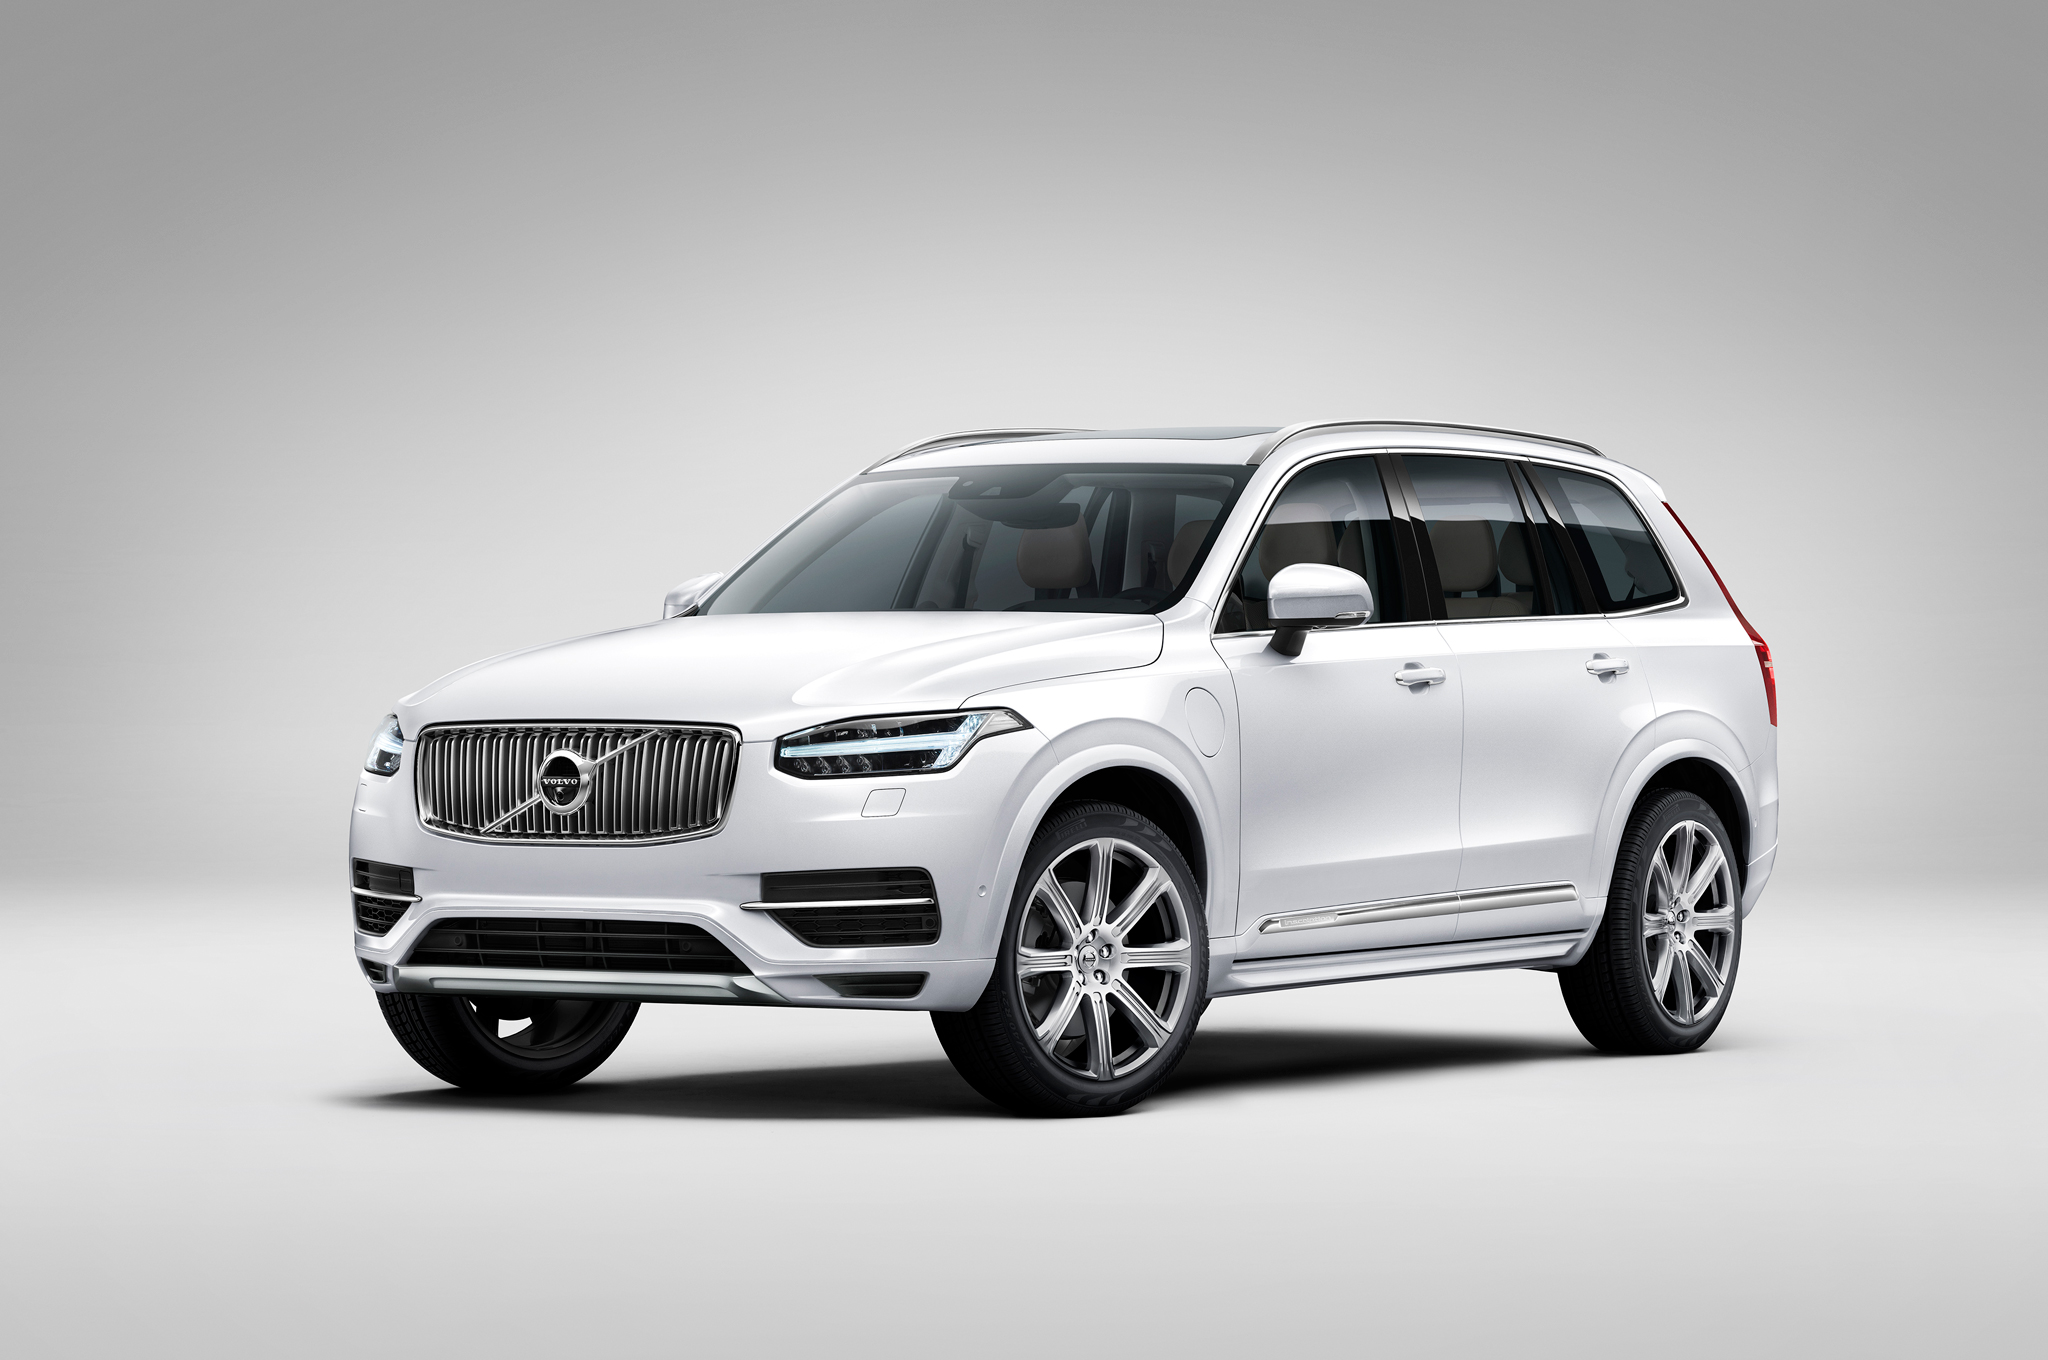 2016 volvo xc90 first edition models sell out in 47 hours - motortrend